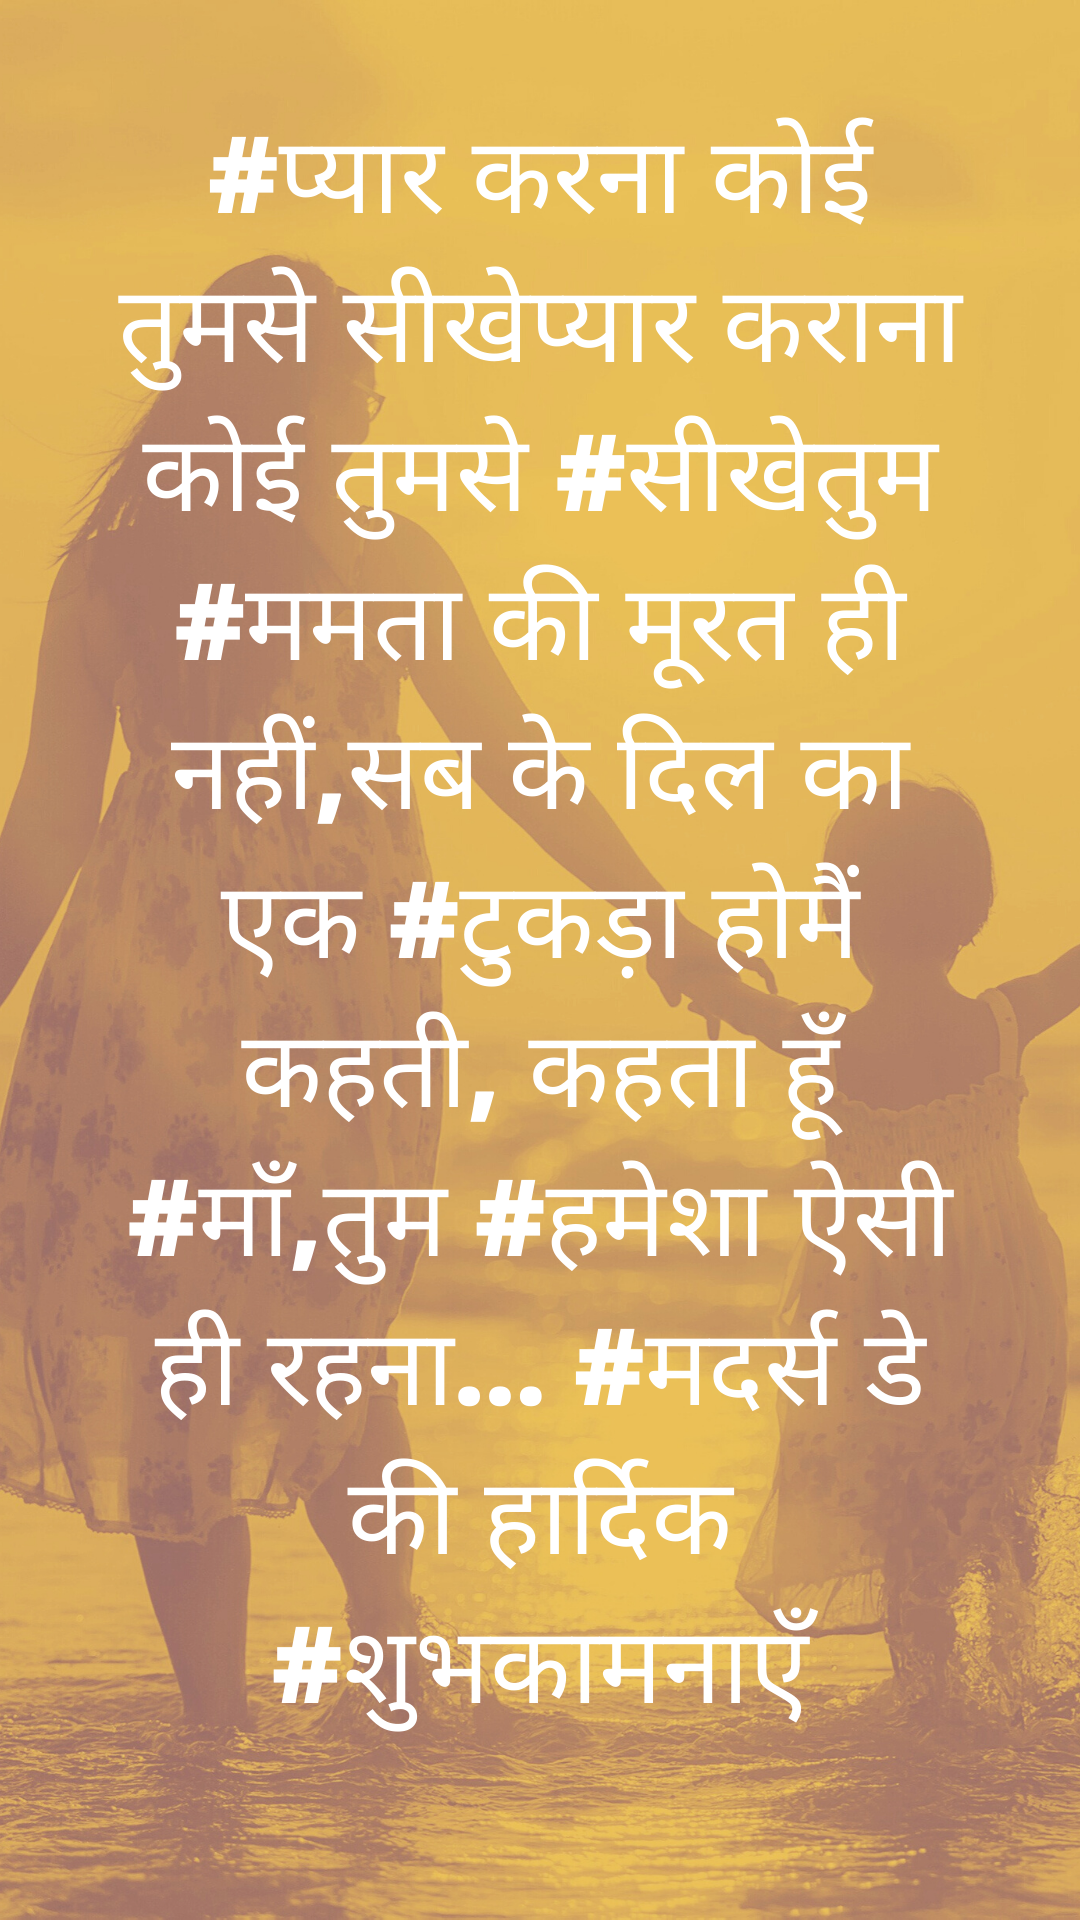 Mothers Day Quote in Hindi 2